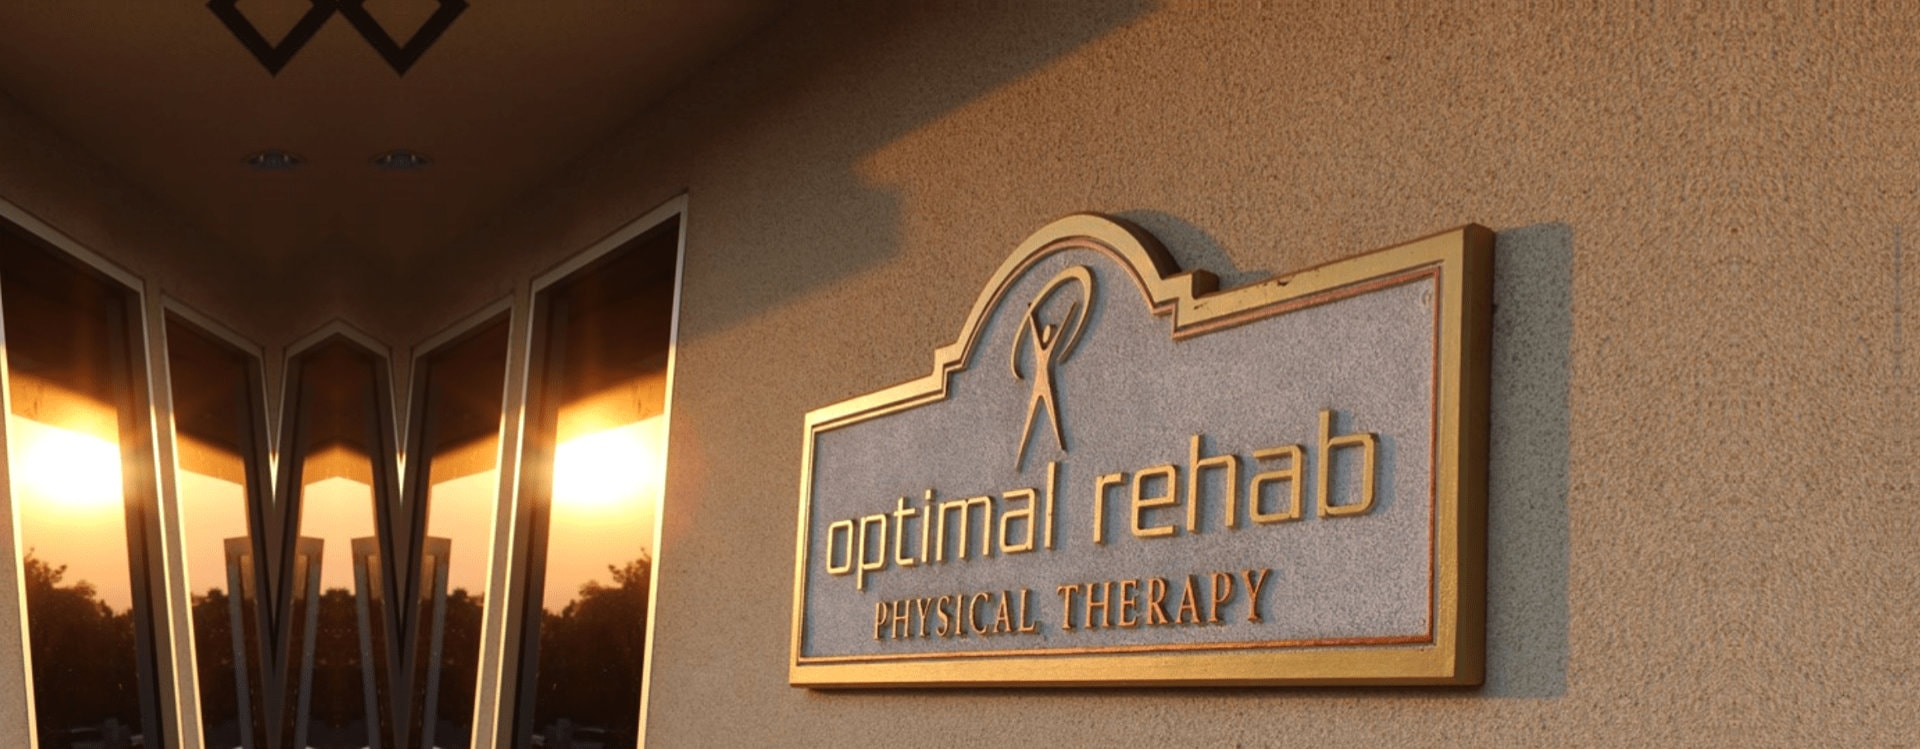 Optical Rehap Physical Therapy Office